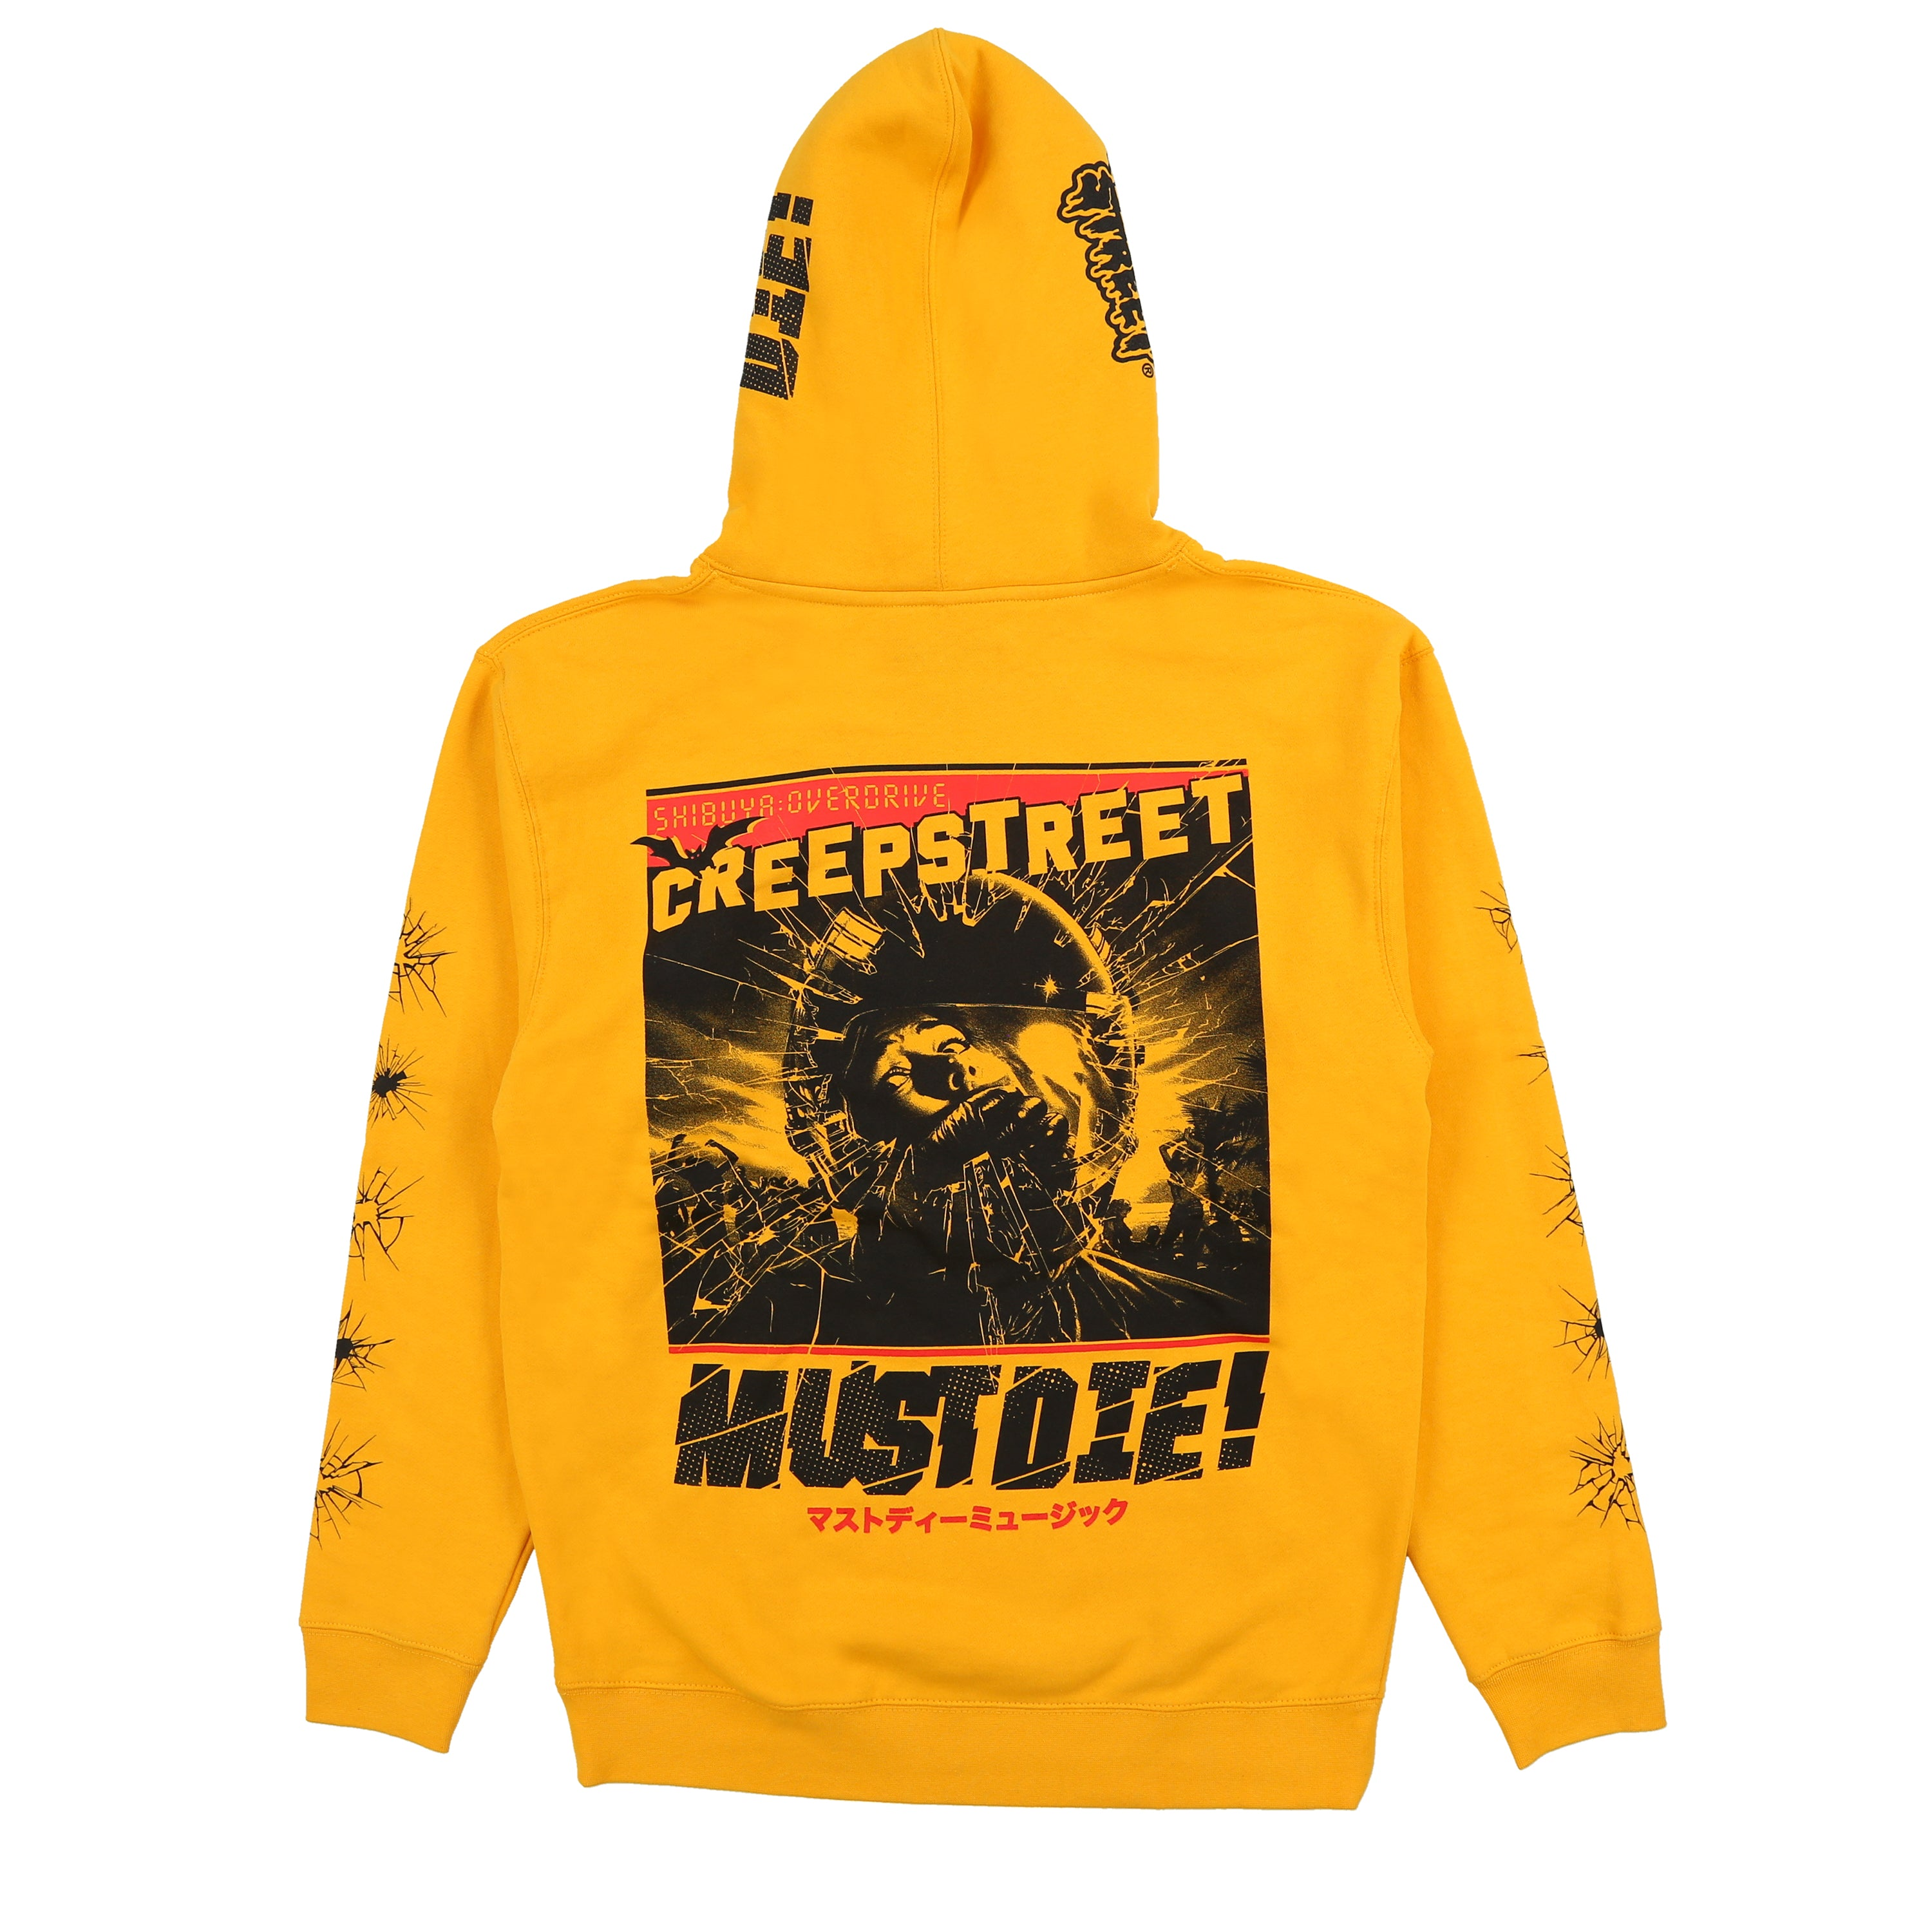 CREEP STREET x MUST DIE! SHATTERED HOODY